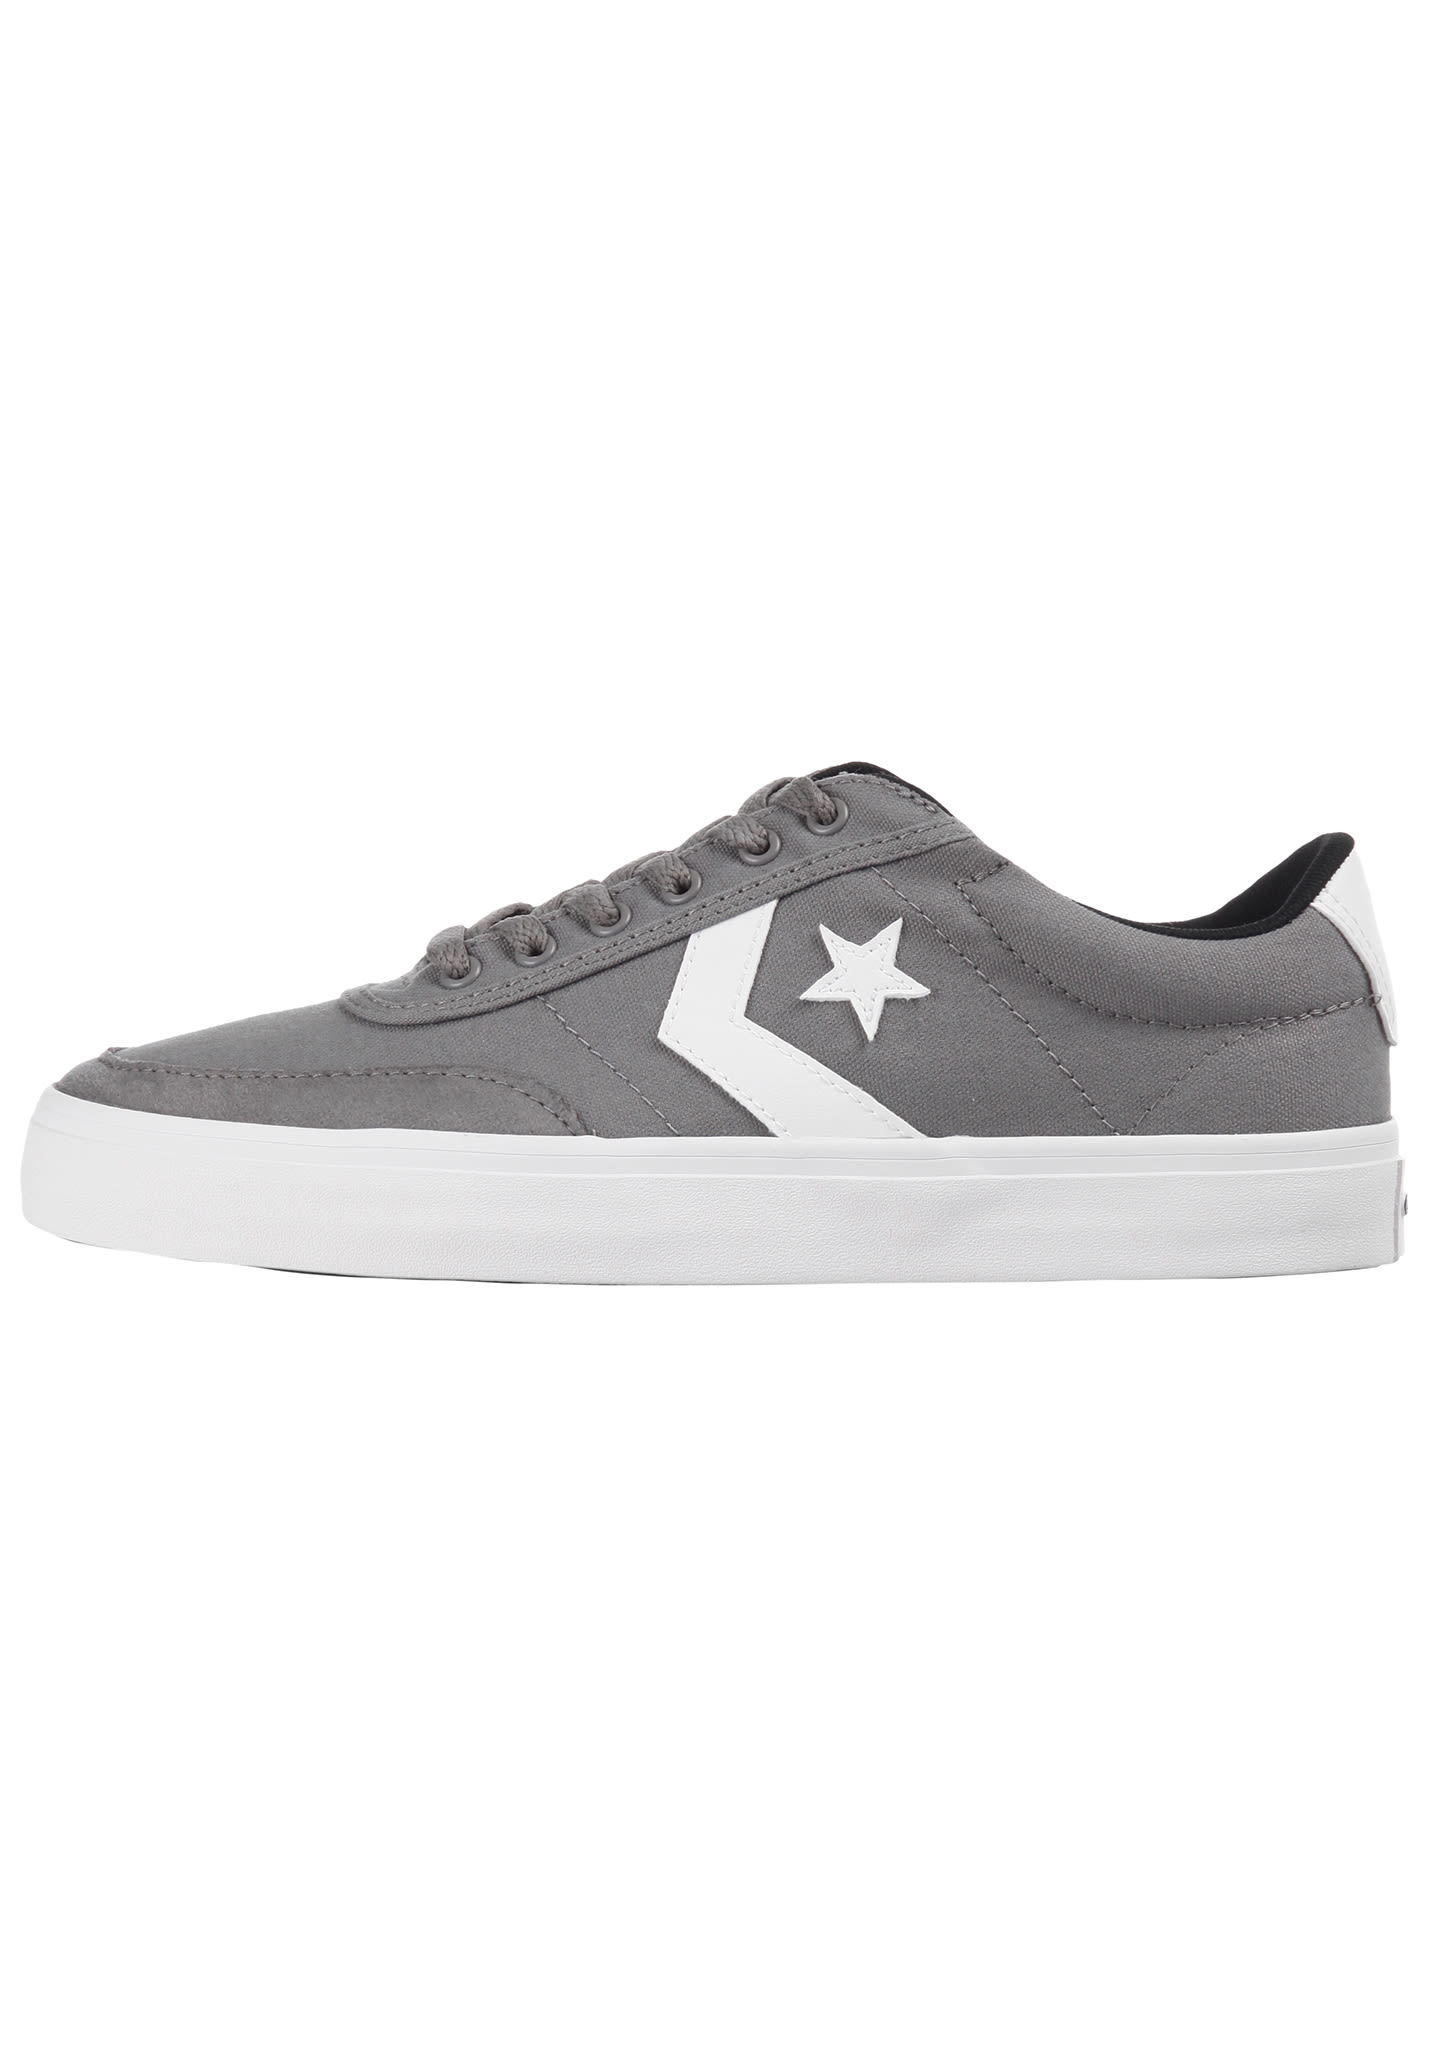 975ba9faec8 Converse Courtland OX - Sneakers voor Heren - Grijs - Planet Sports